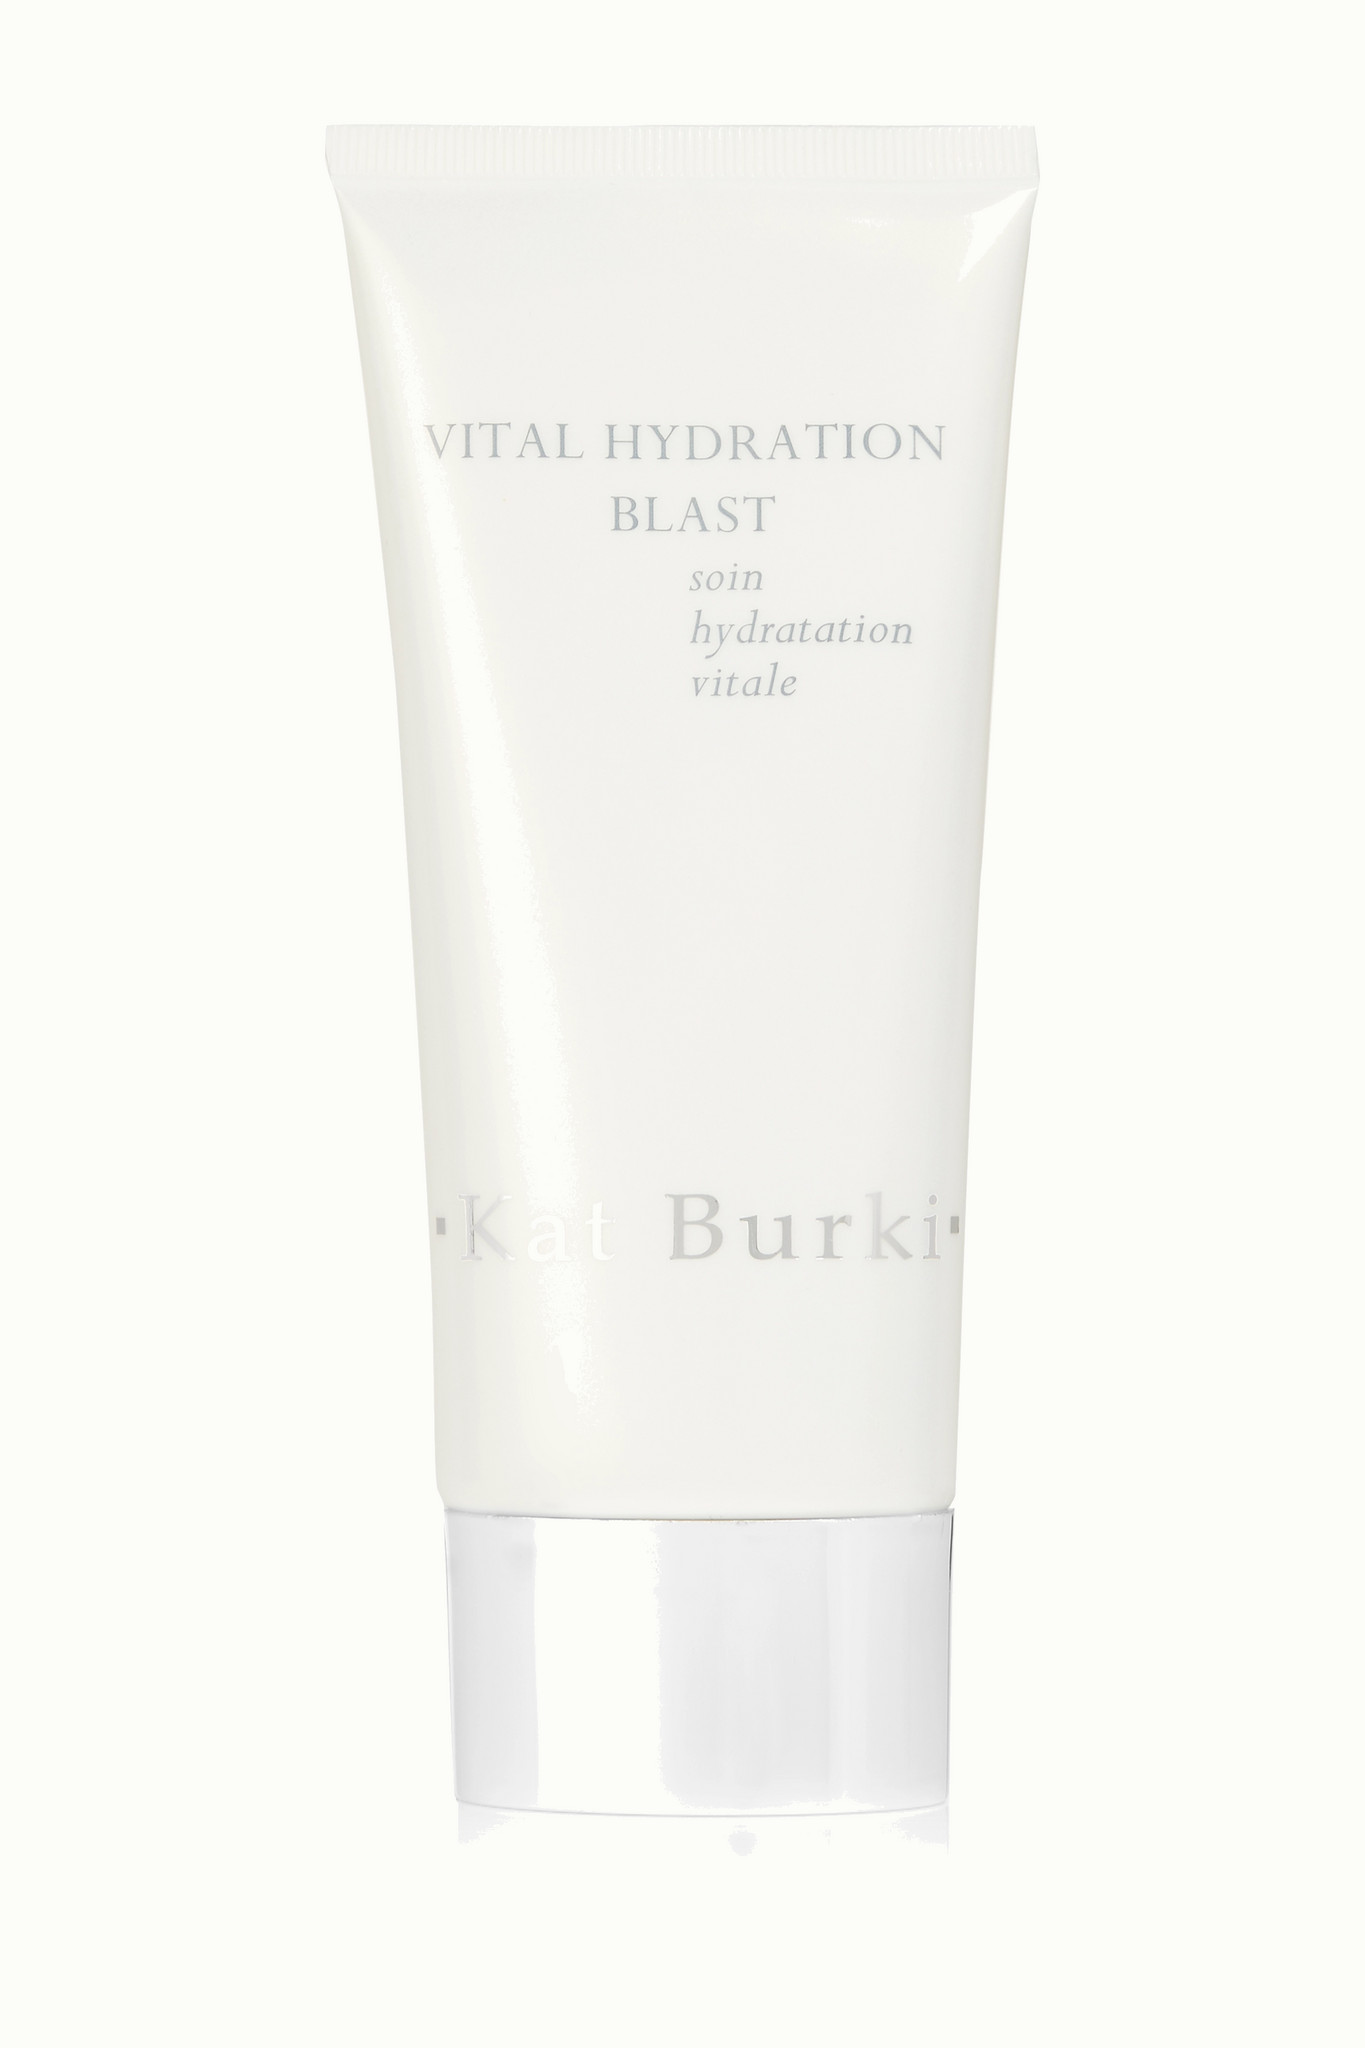 KAT BURKI - Vital Hydration Blast, 130ml - one size